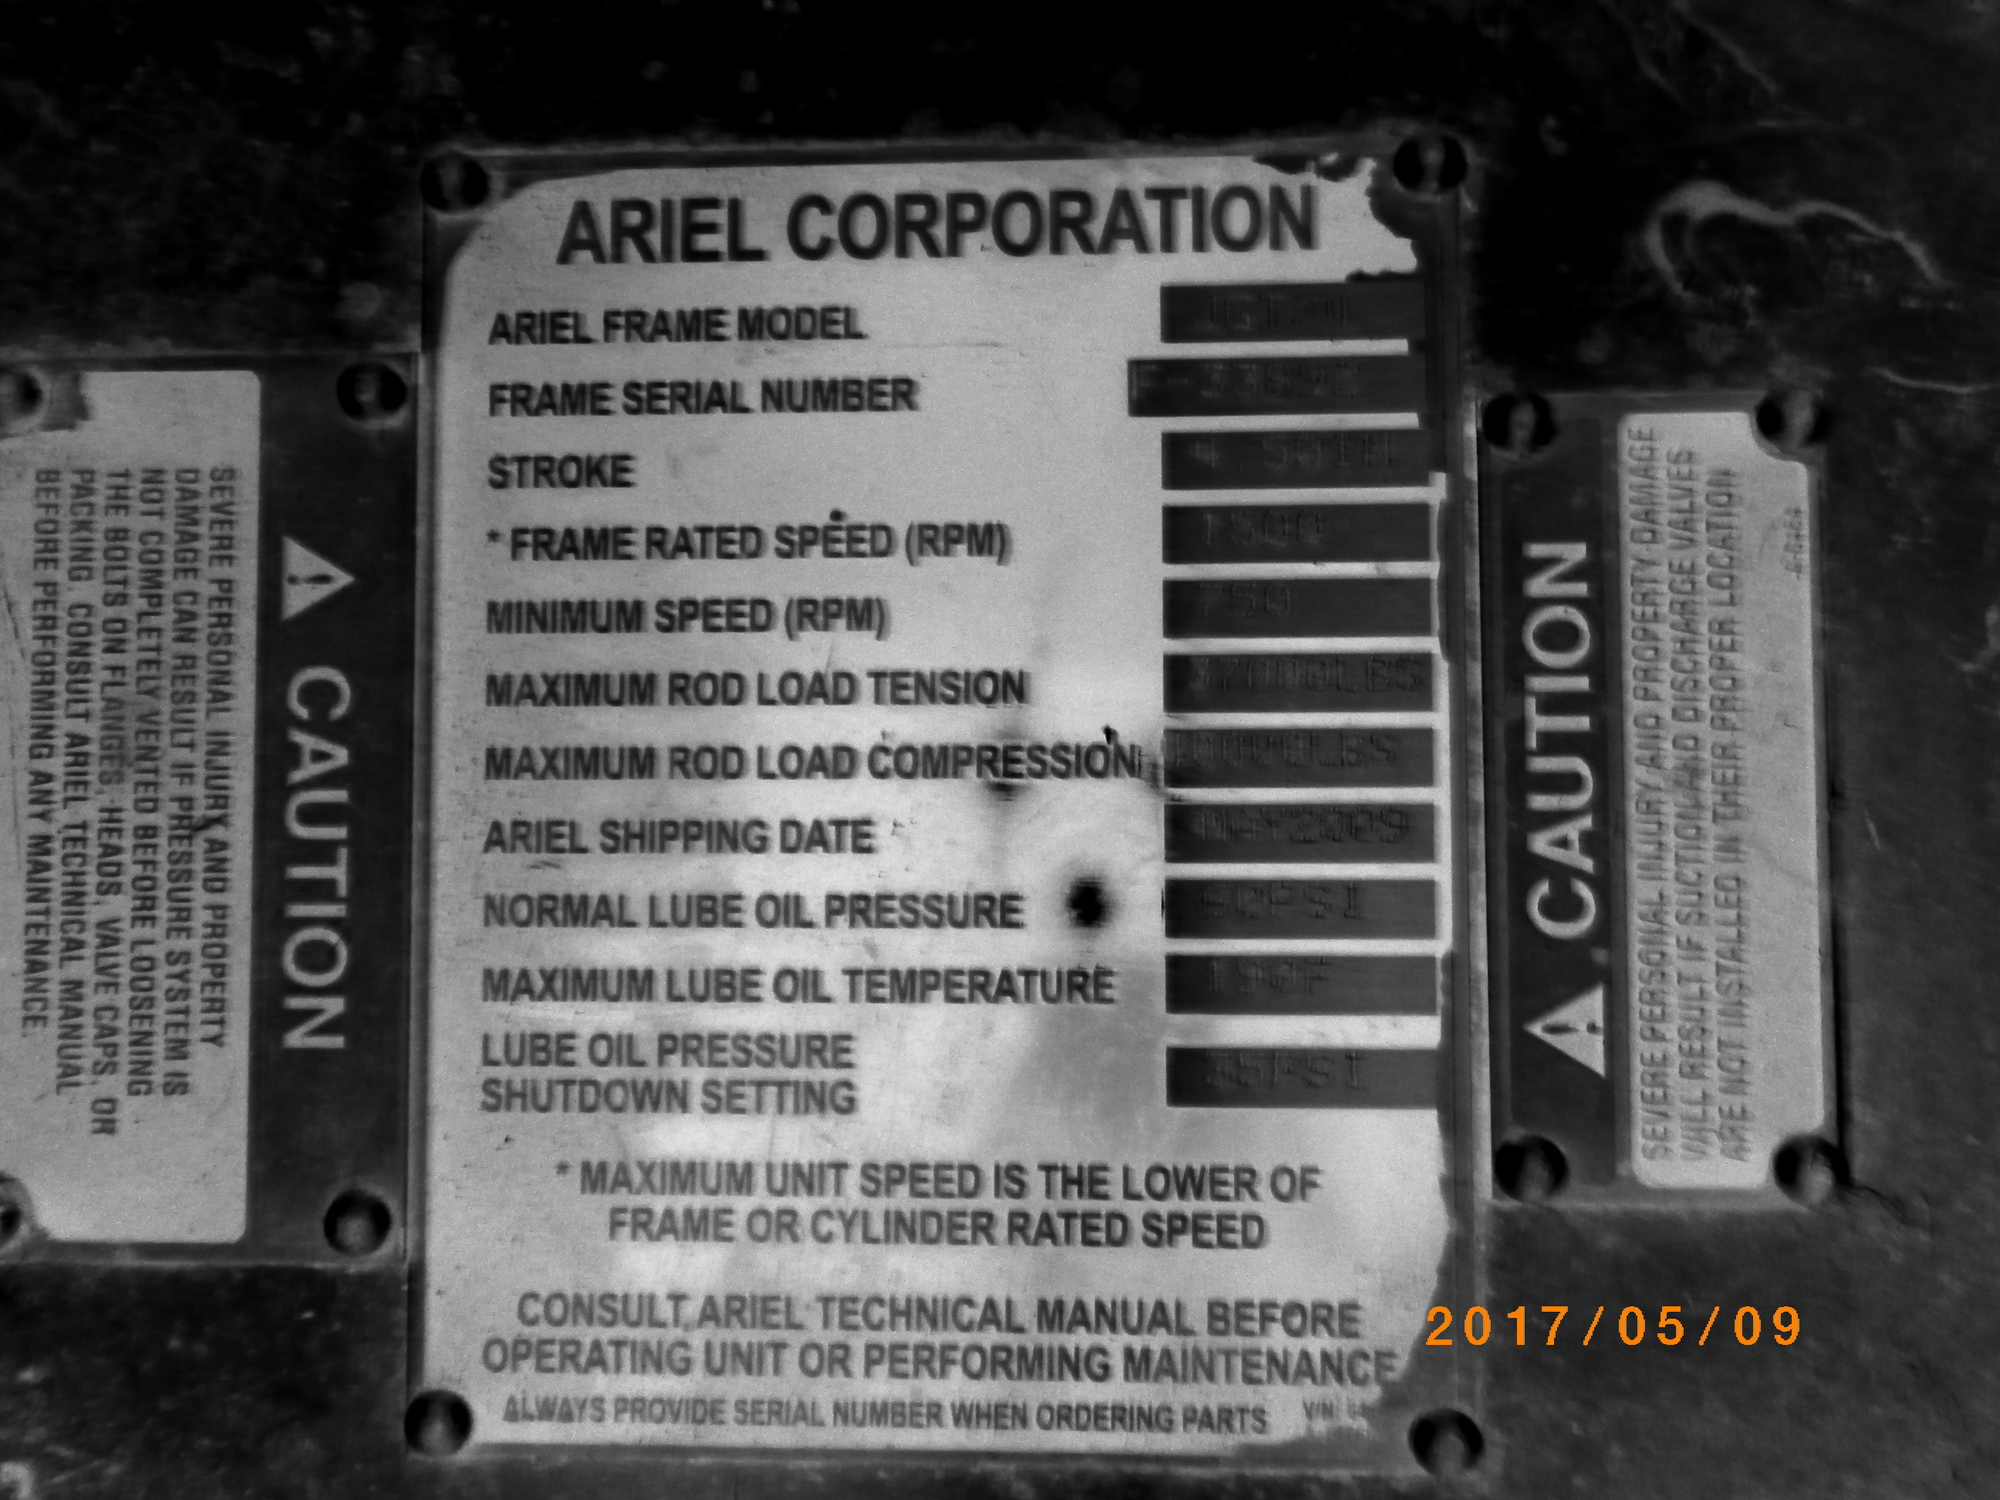 ARMOUREE - 2009 COMPRESSOR UNIT 2700 Ariel JGT/4 Recip 0 PSI